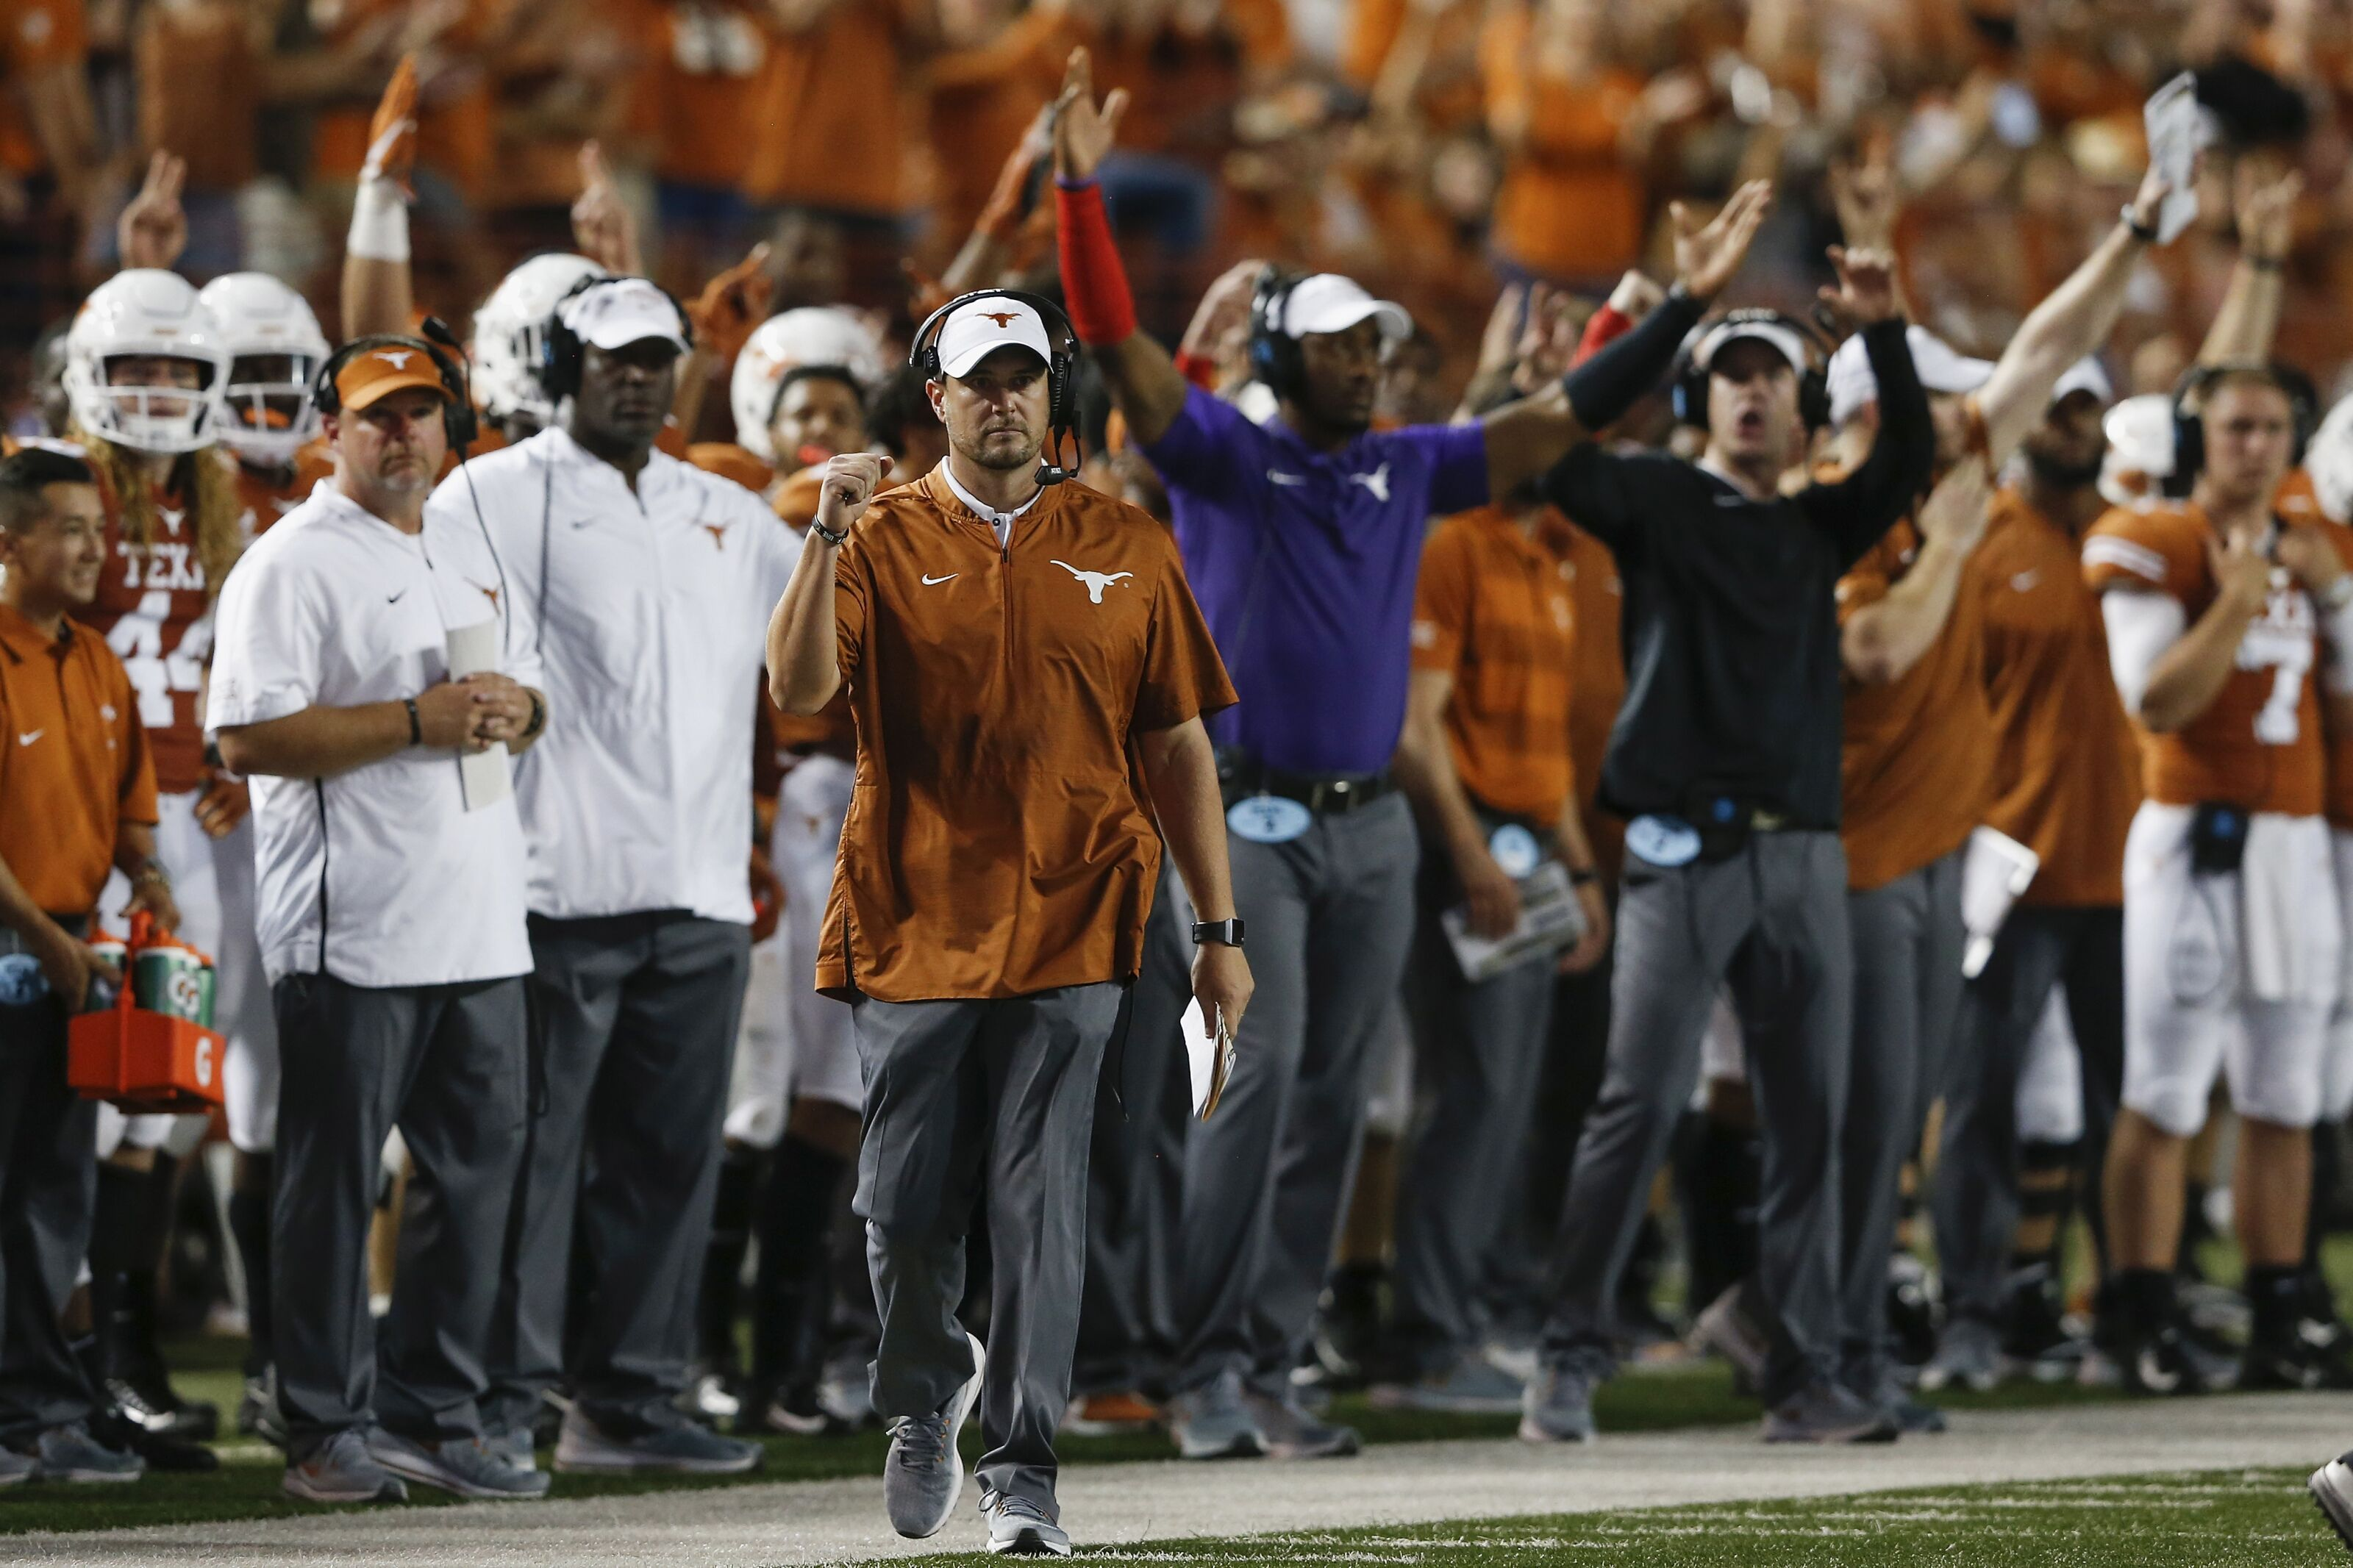 2017 Texas Basketball Recruiting Longhorn Class Ranked 4: Texas Football Recruiting: 3 Most Underrated 2019 Commits